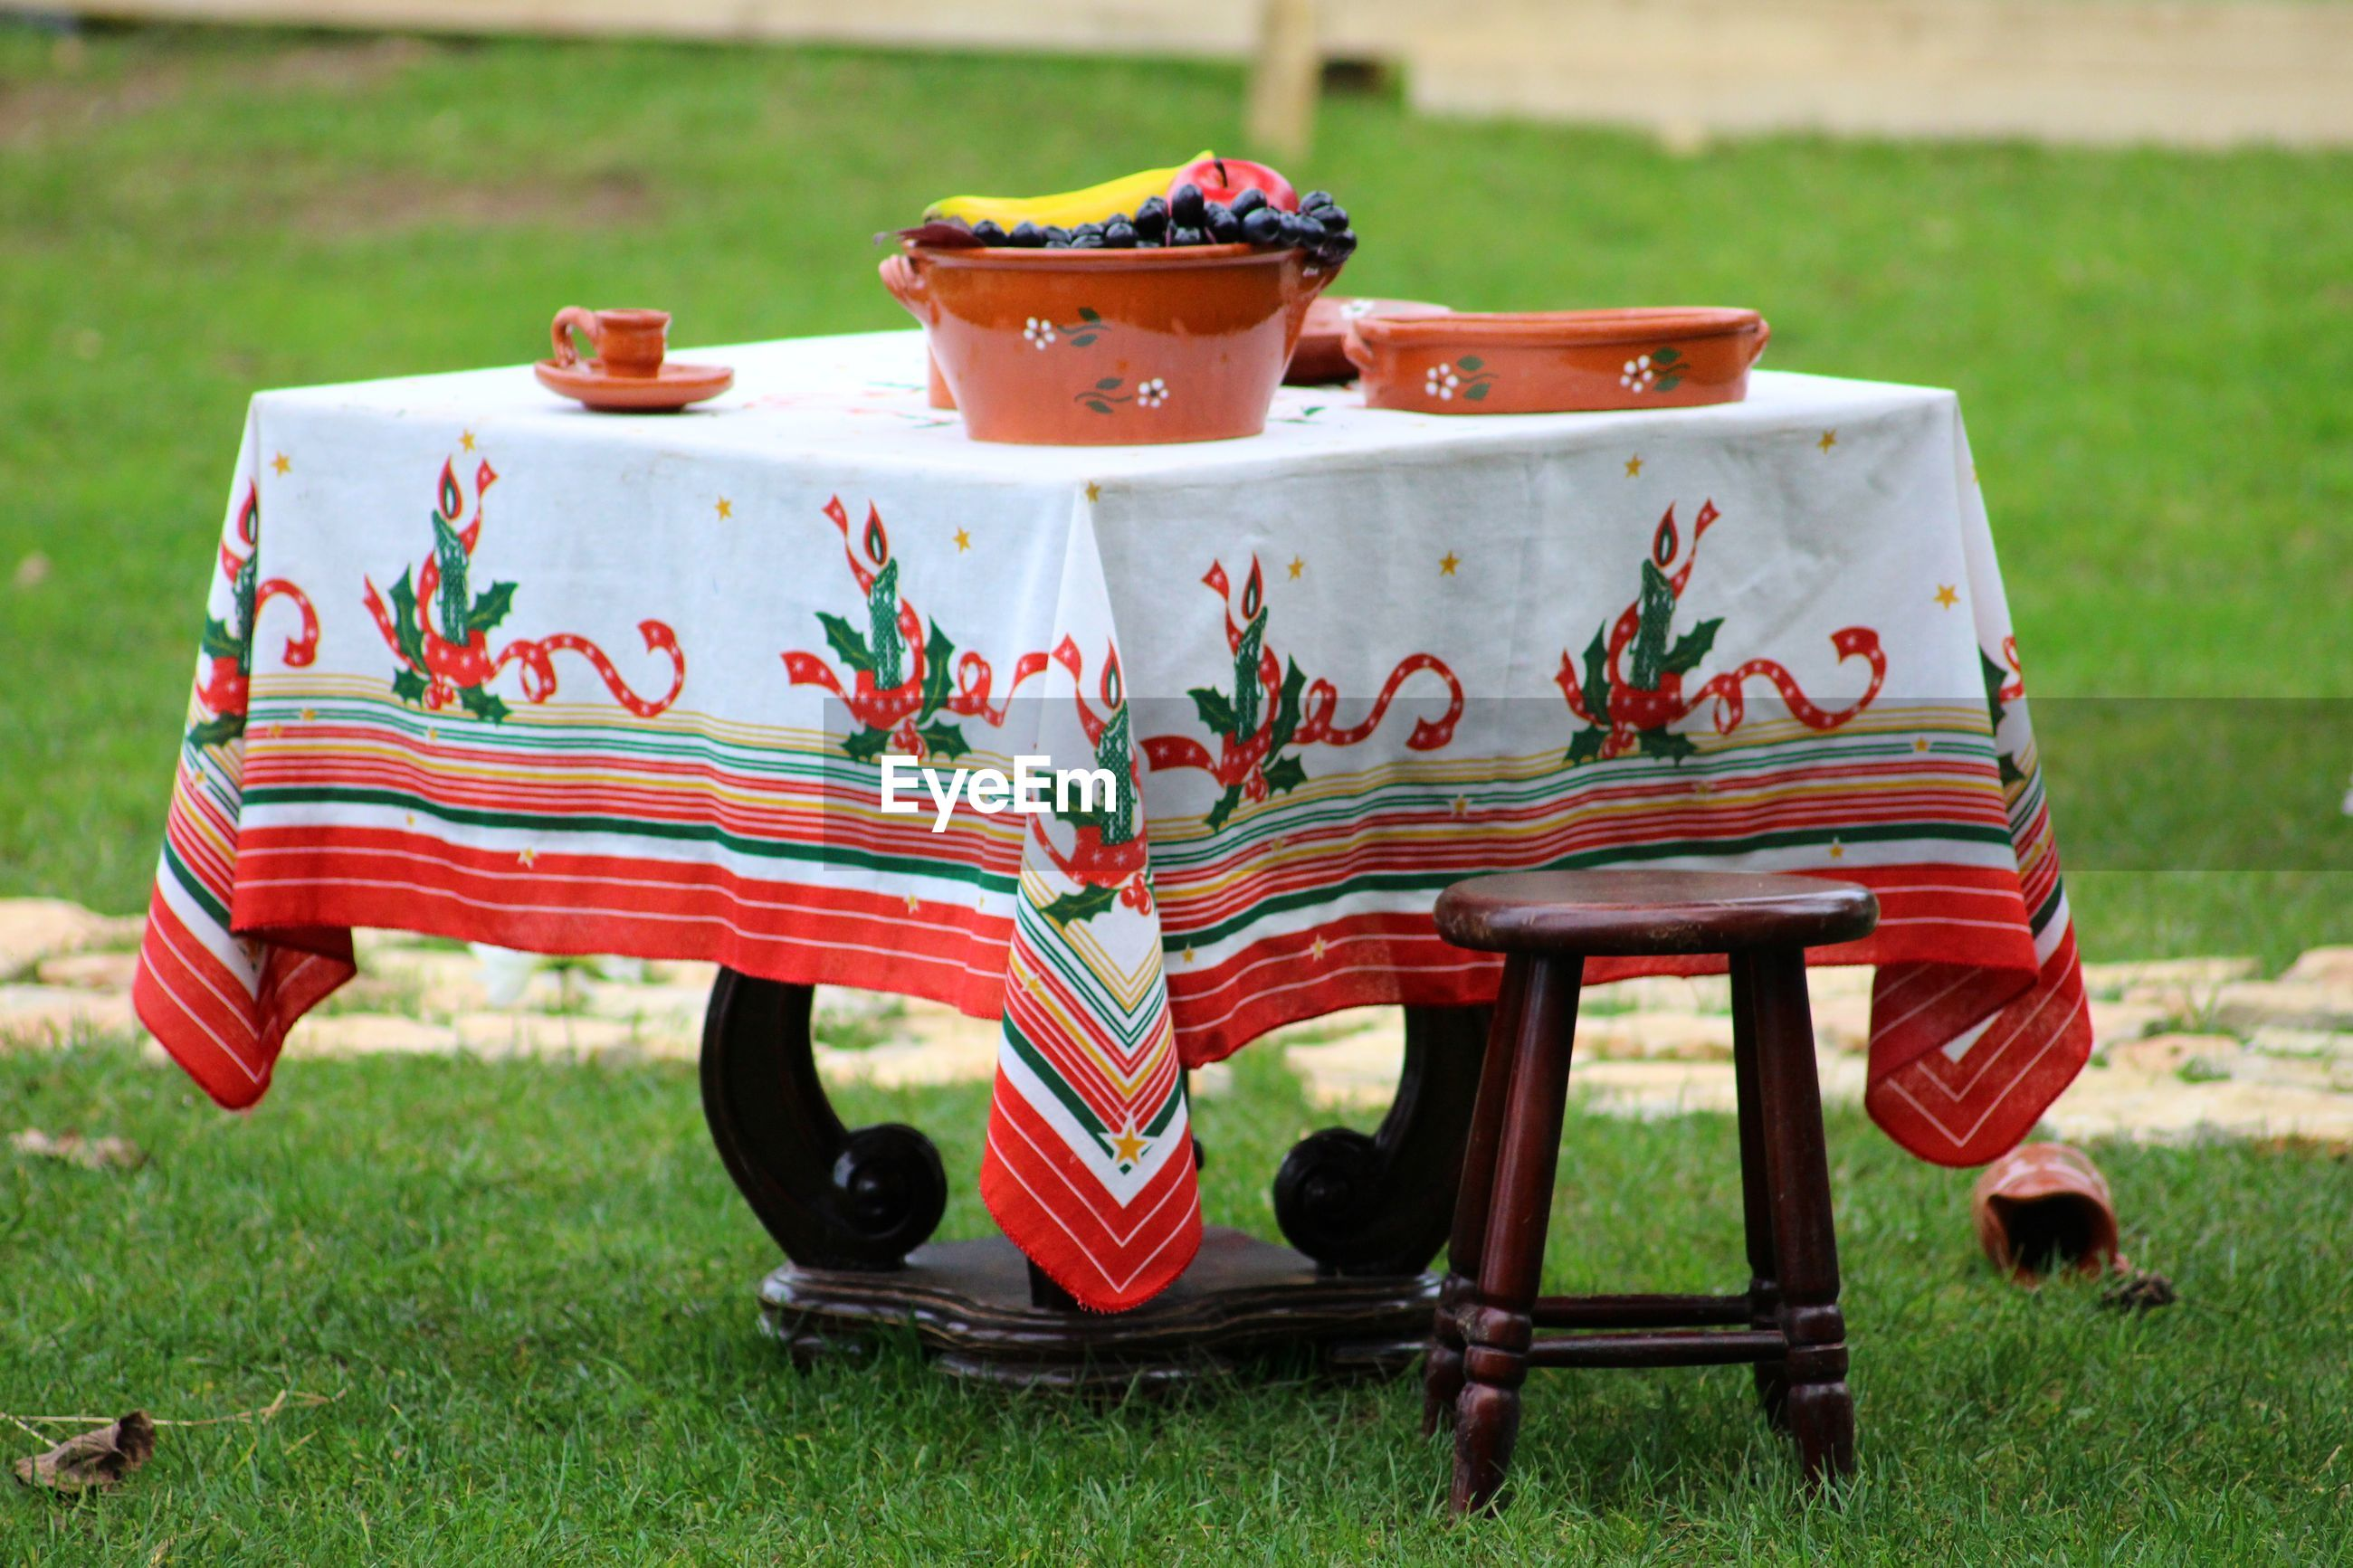 Close-up of red table setting on field in park